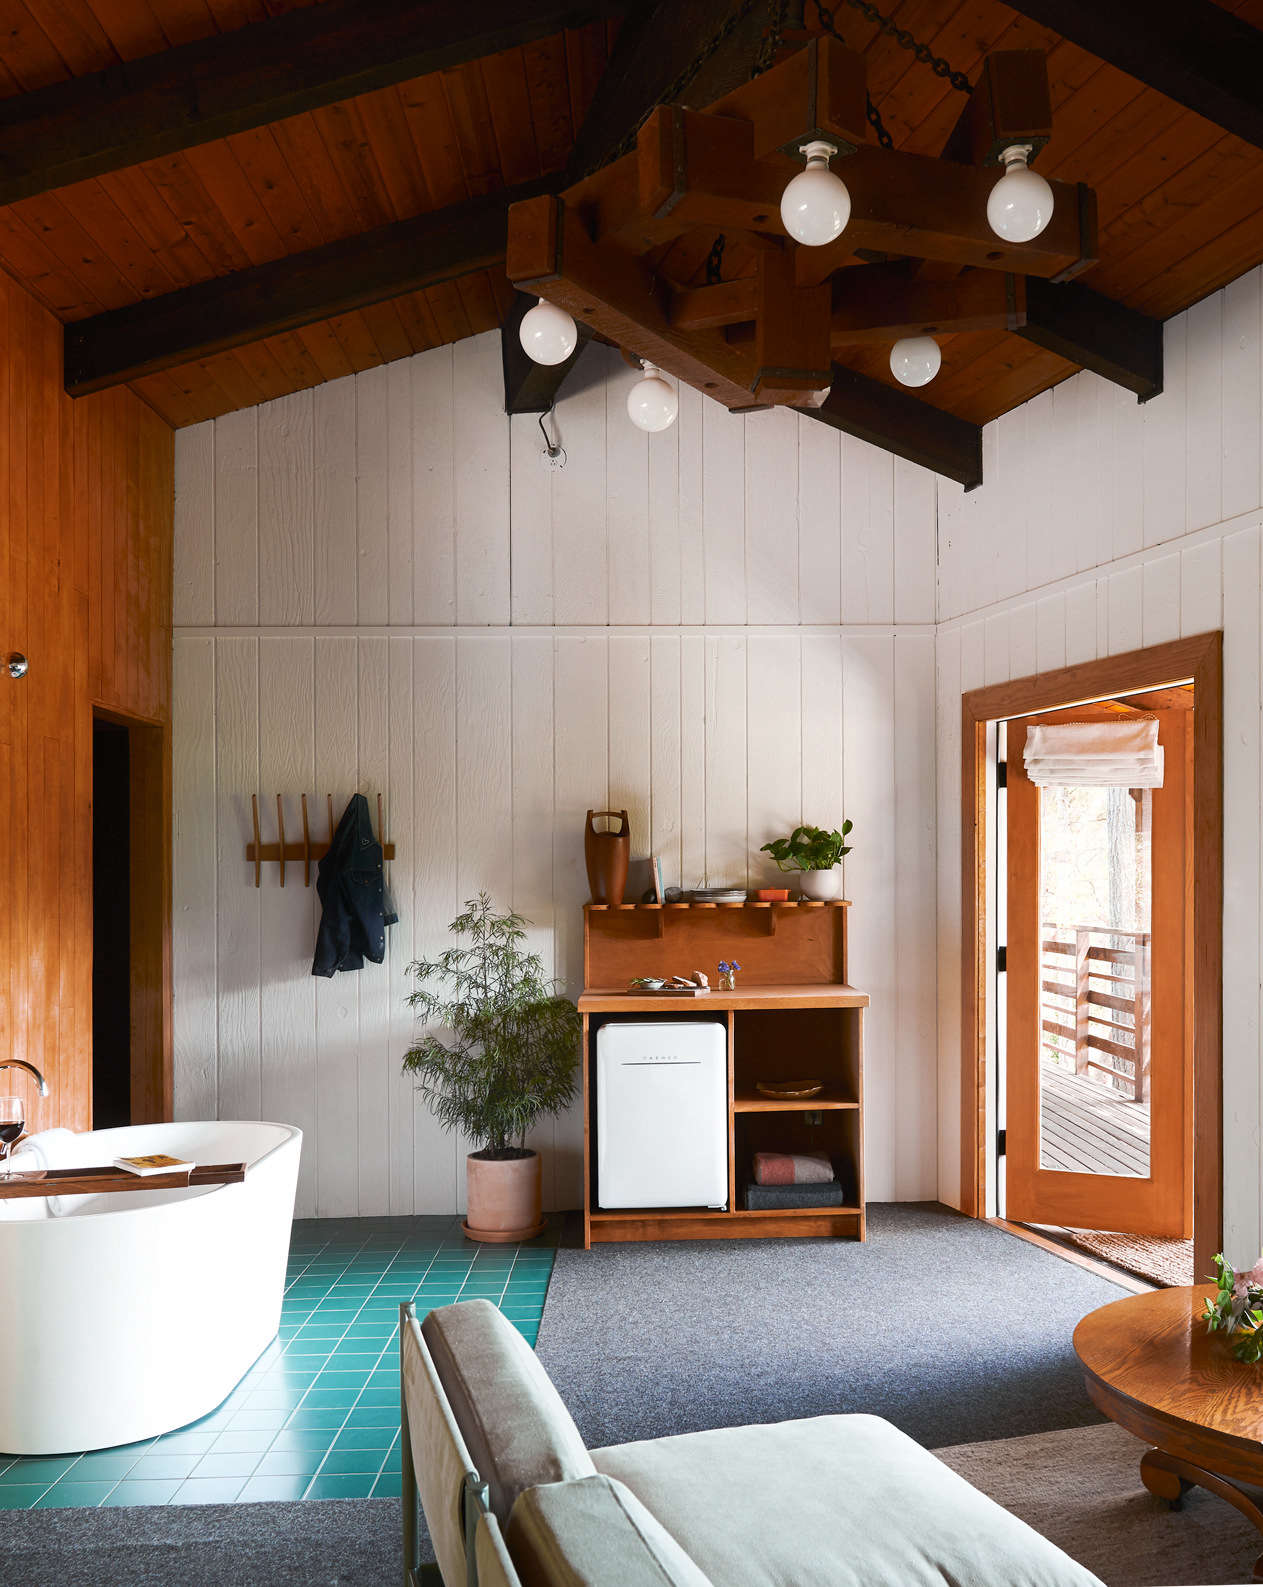 An in-room soaking tub in the Scandi-inspired suite.